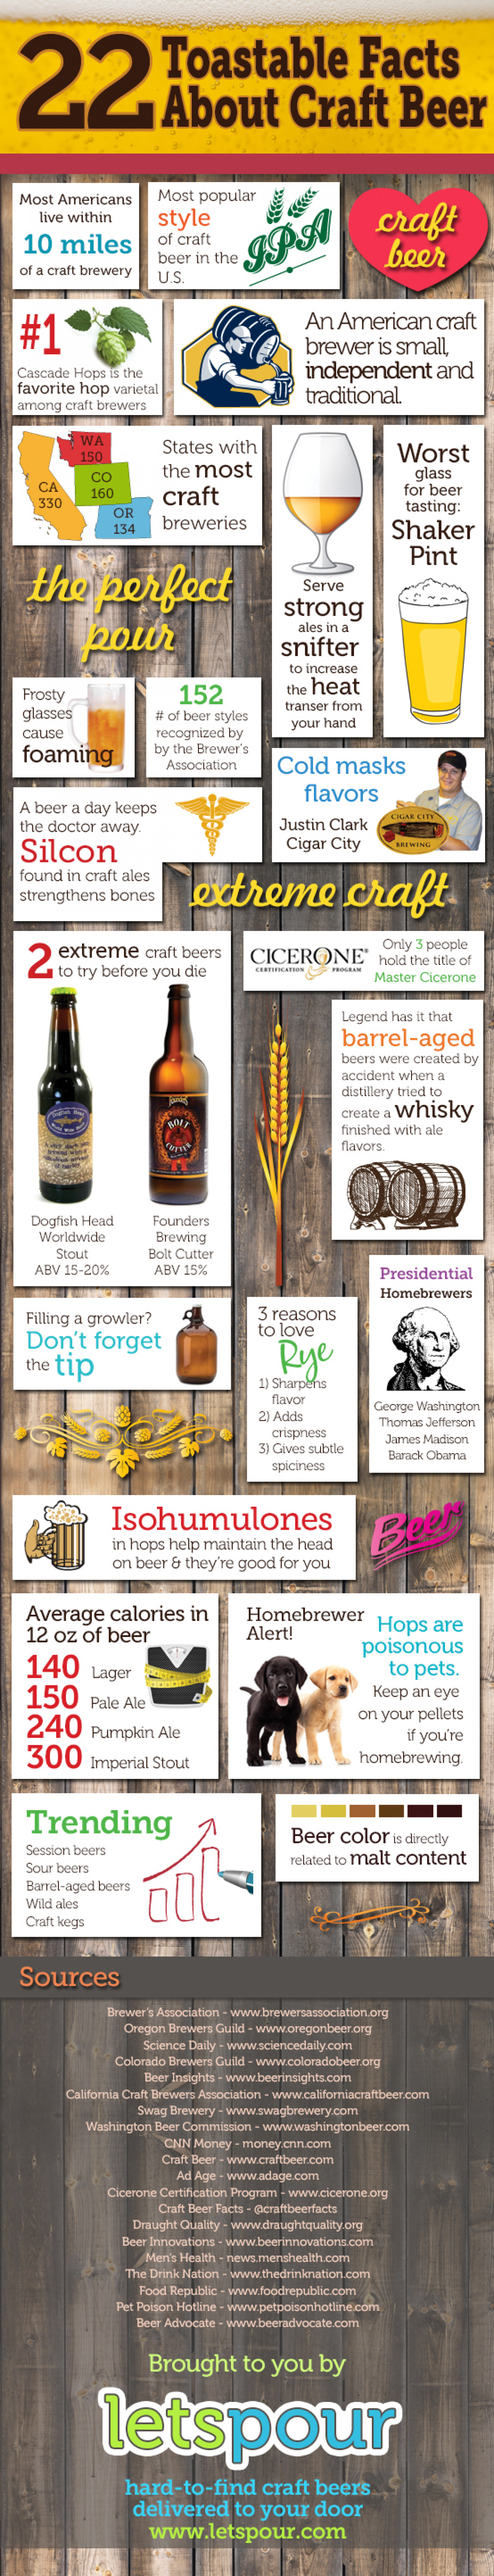 22 Toastable Facts About Craft Beer Infographic